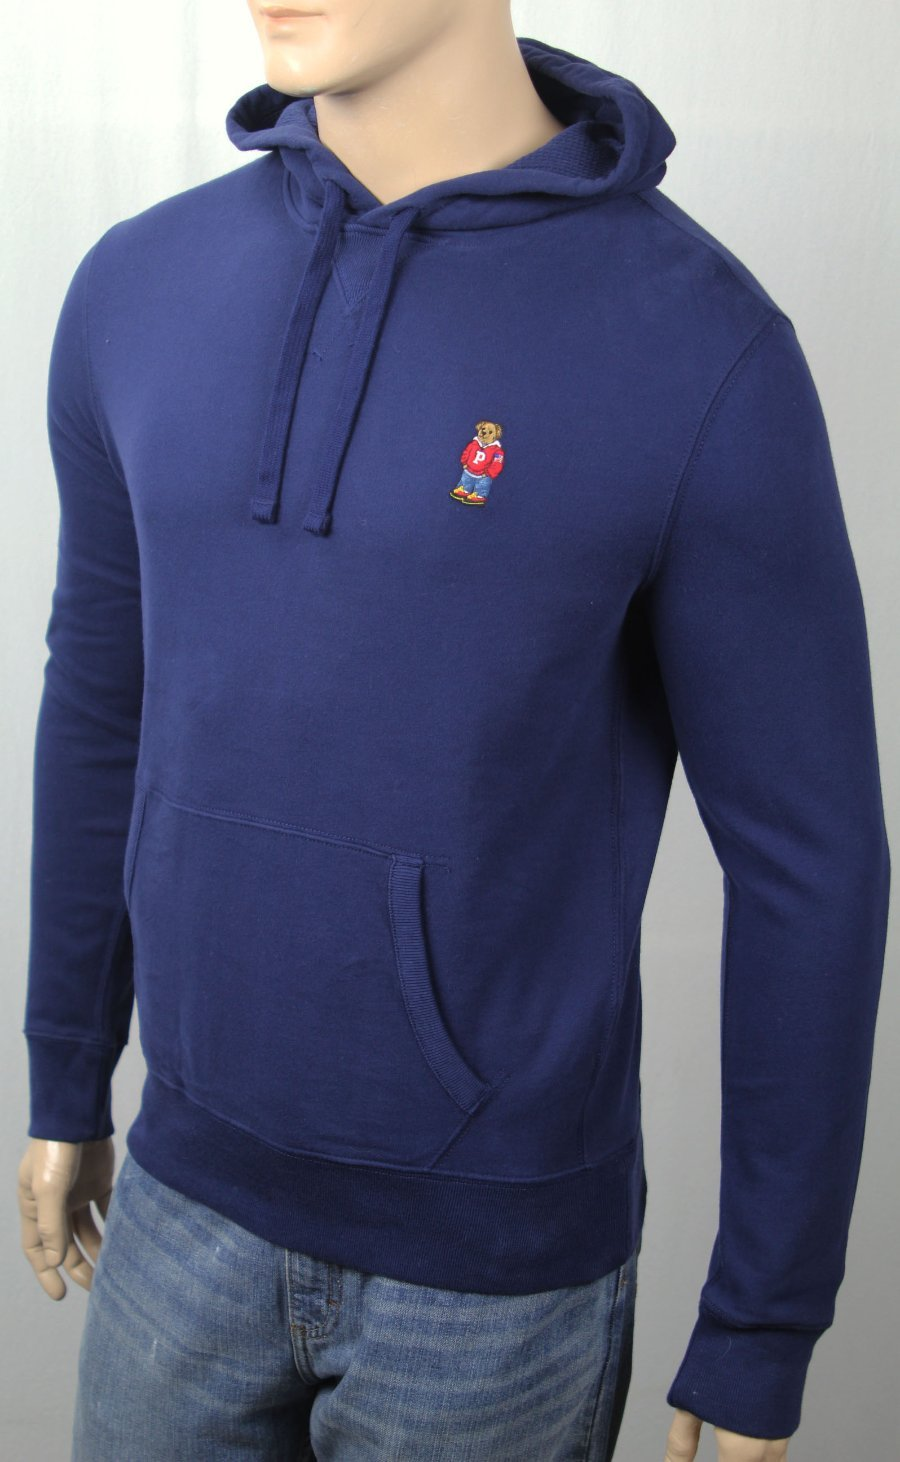 40dd46716 This gorgeous pullover hoodie sweatshirt is by Polo Ralph Lauren. In a  fabulous